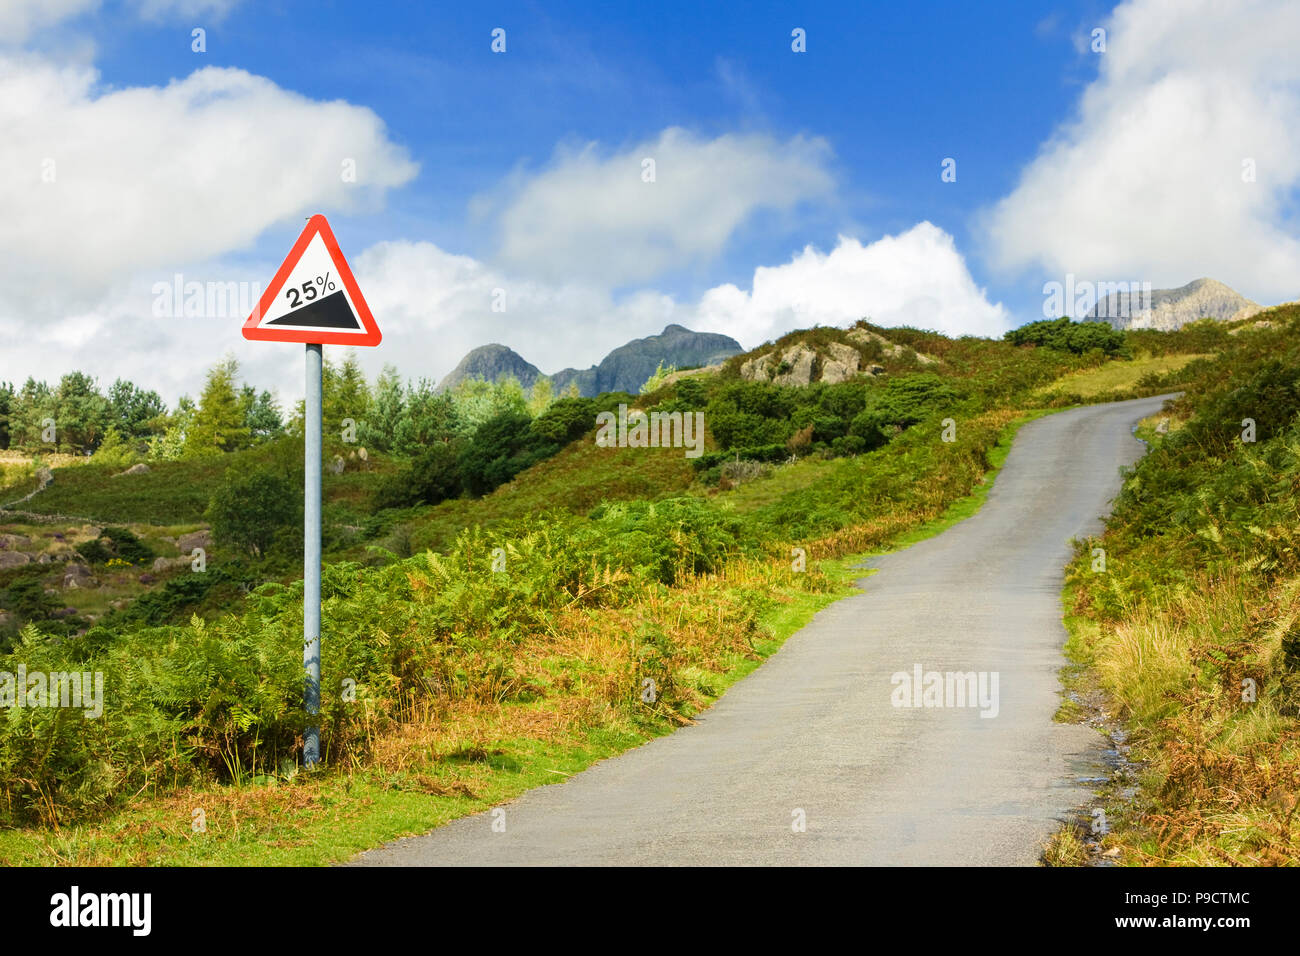 Road sign and small hillside country road in countryside with warning of 25 percent gradient ahead, Cumbria, England UK - Stock Image